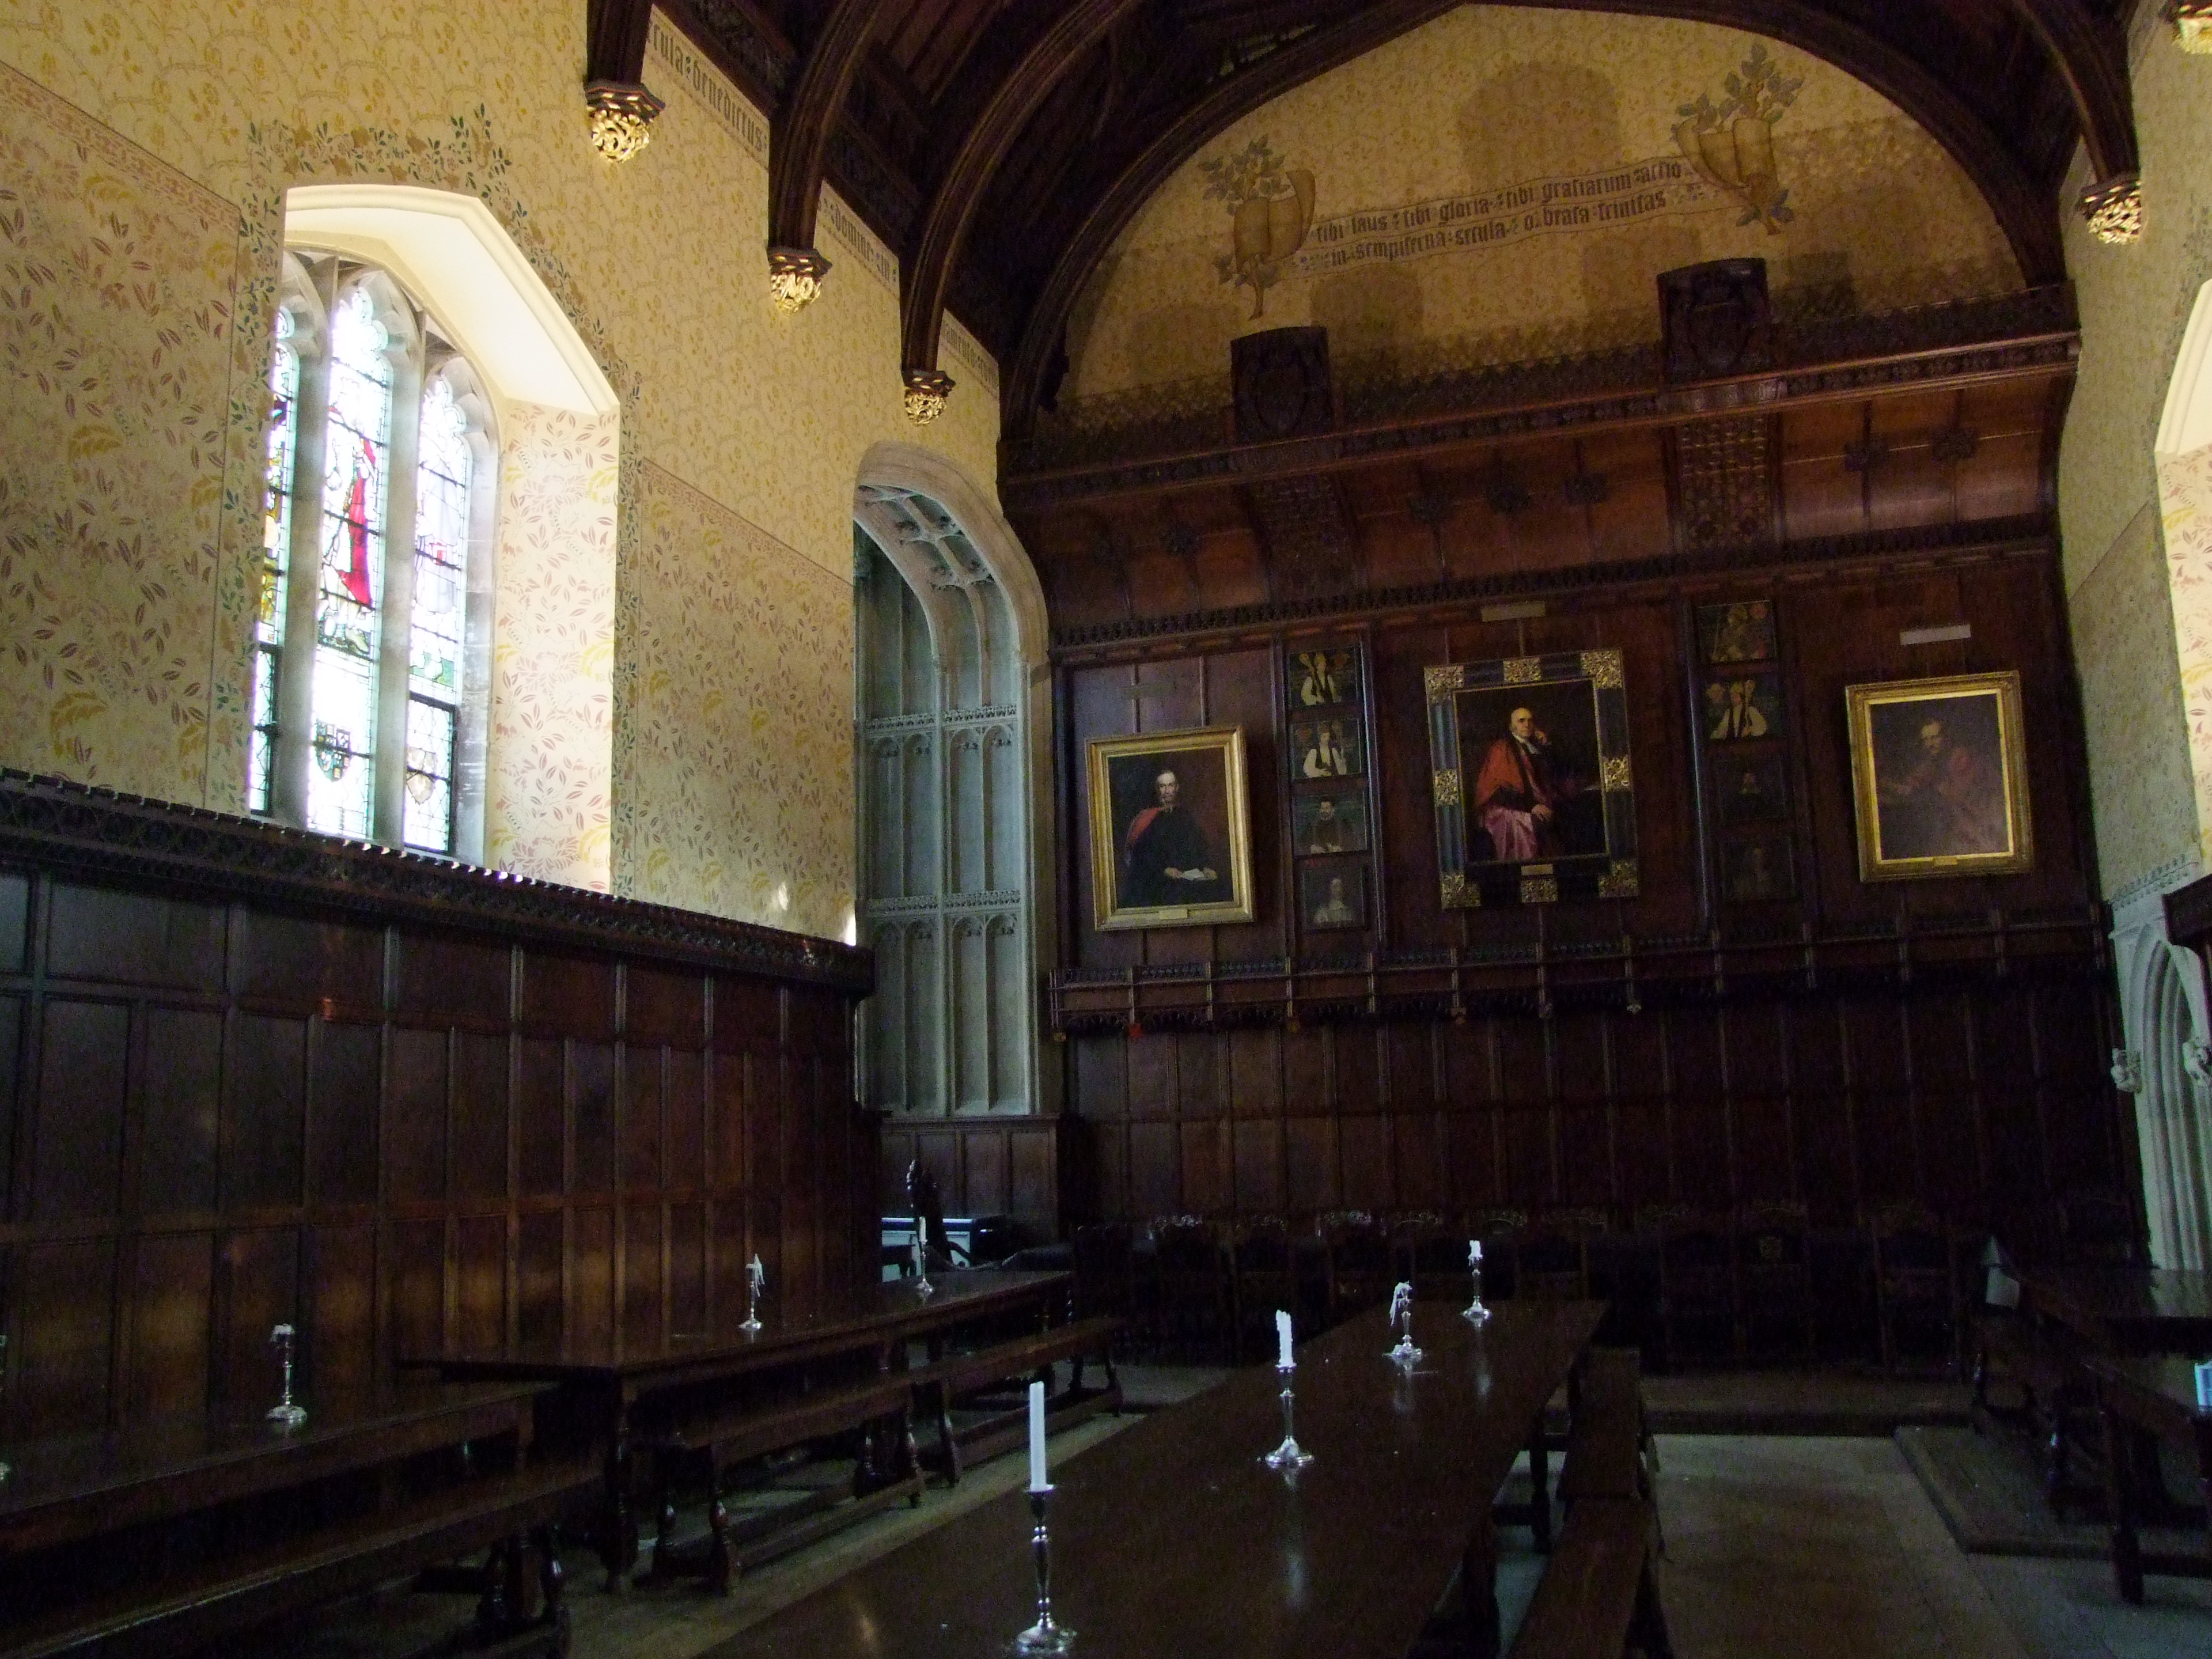 Peterhouse Hall is the oldest building in Europe still used for its original purpose, even after the admission of women in 1985.